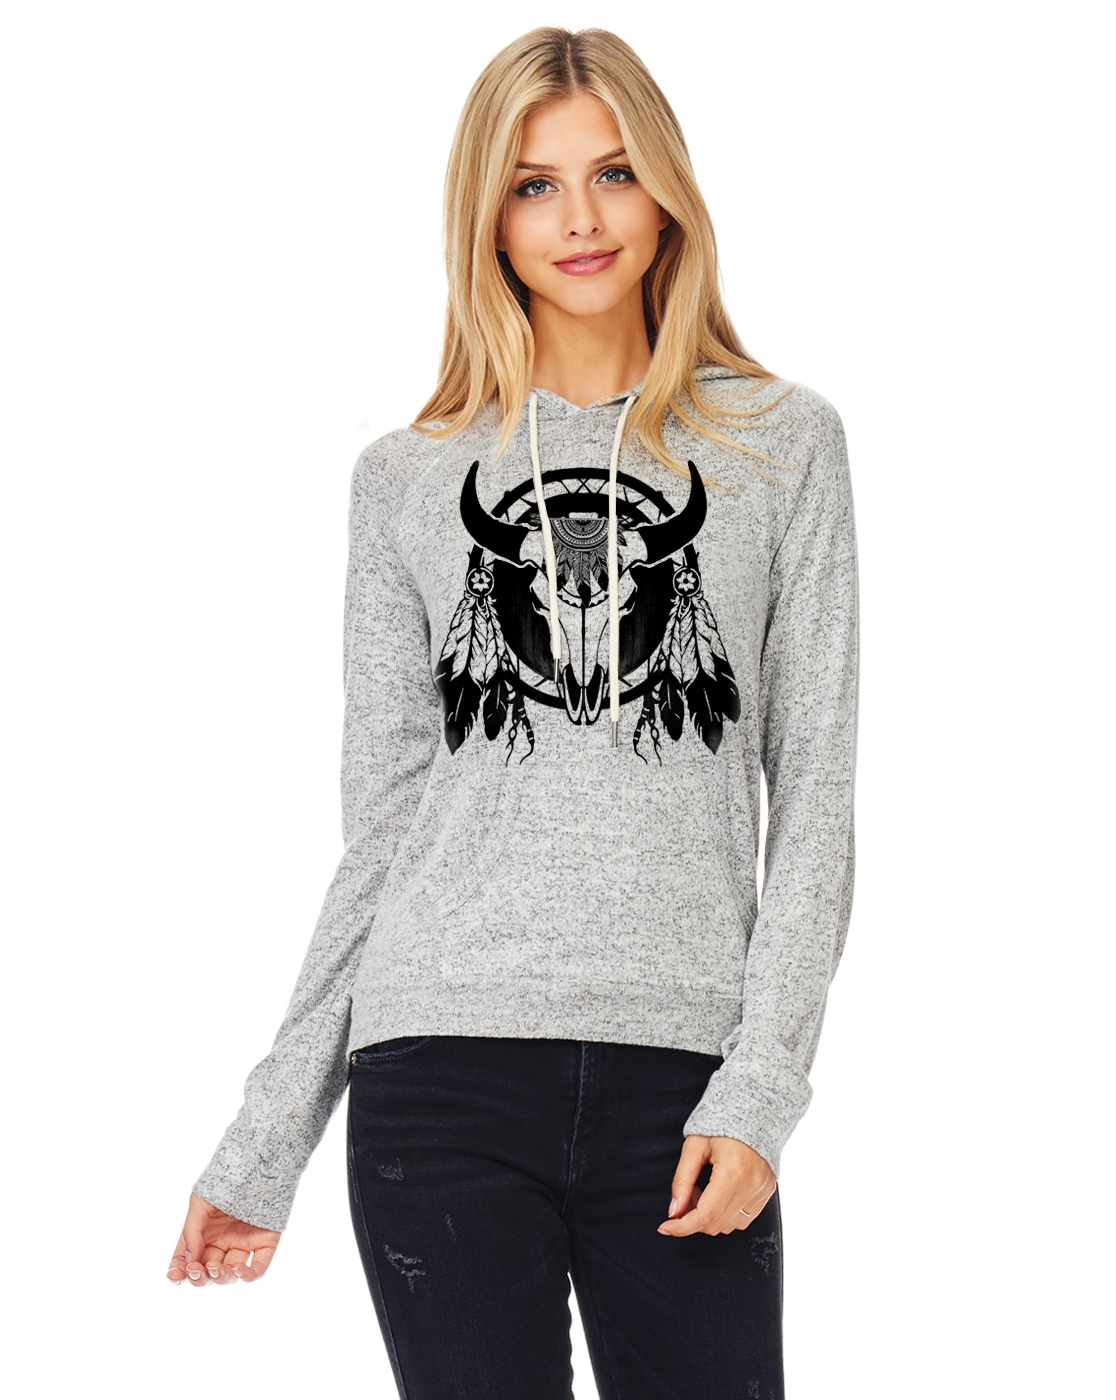 Taurus Hooded drawstring sweater C - orangeshine.com